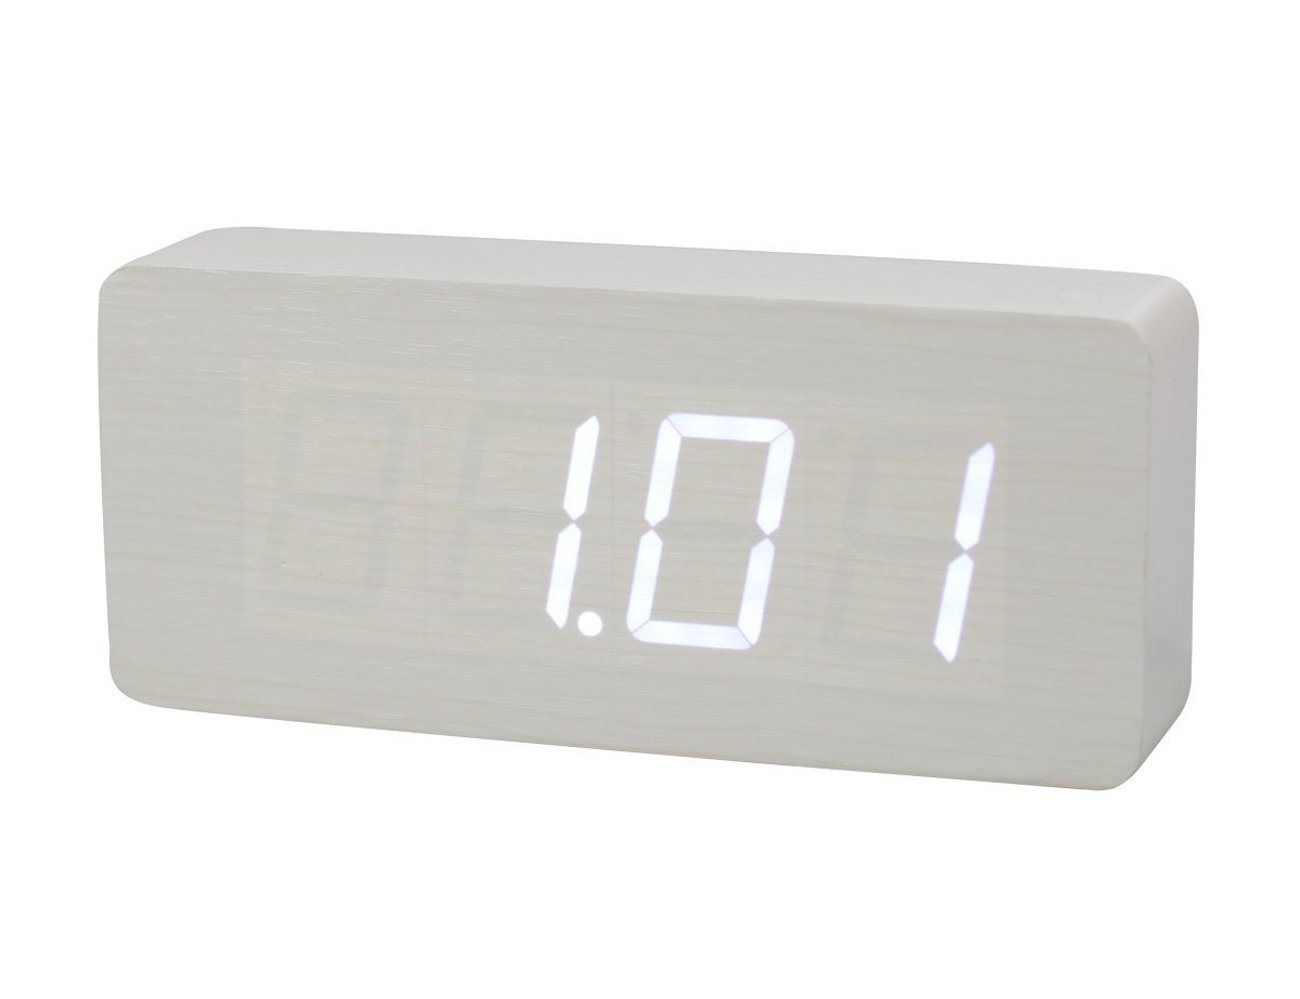 wood-grain-led-alarm-clock-04